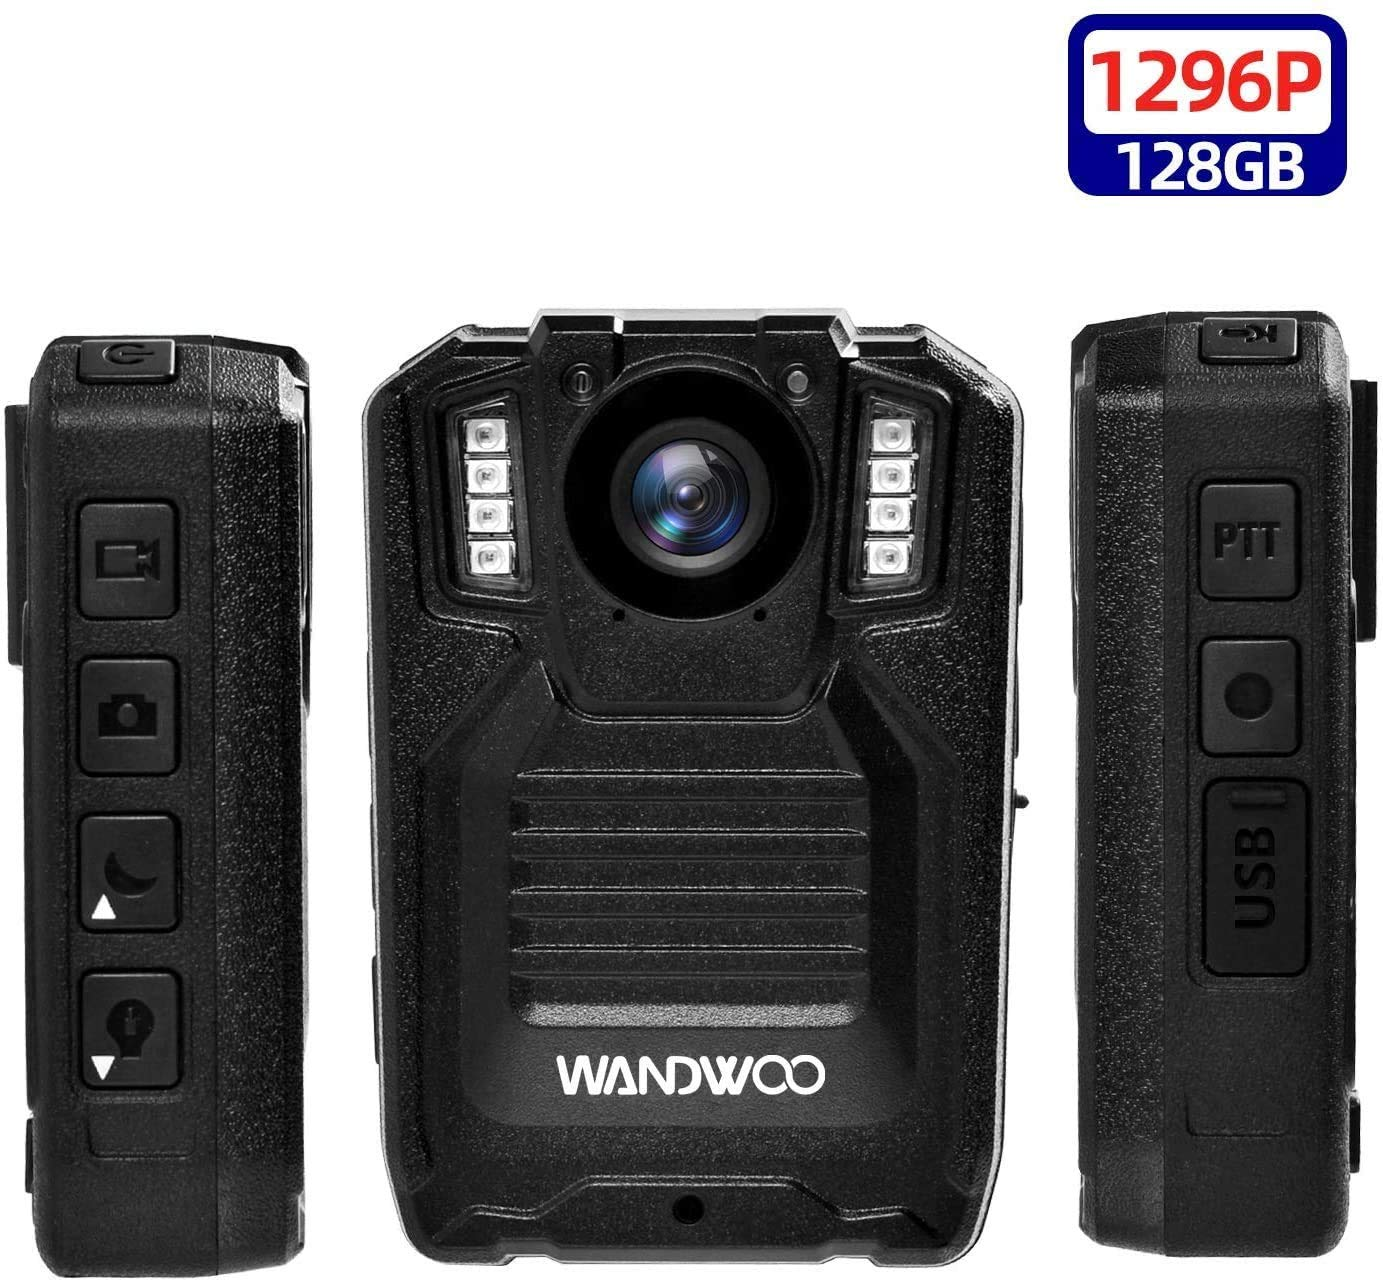 1296P Police Body Camera,128G Memory,WANDWOO Premium Portable Body Camera,Waterproof Body-Worn Camera with 2 Inch Display,Night Vision for Law Enforcement Recorder,Security Guards,Personal Use